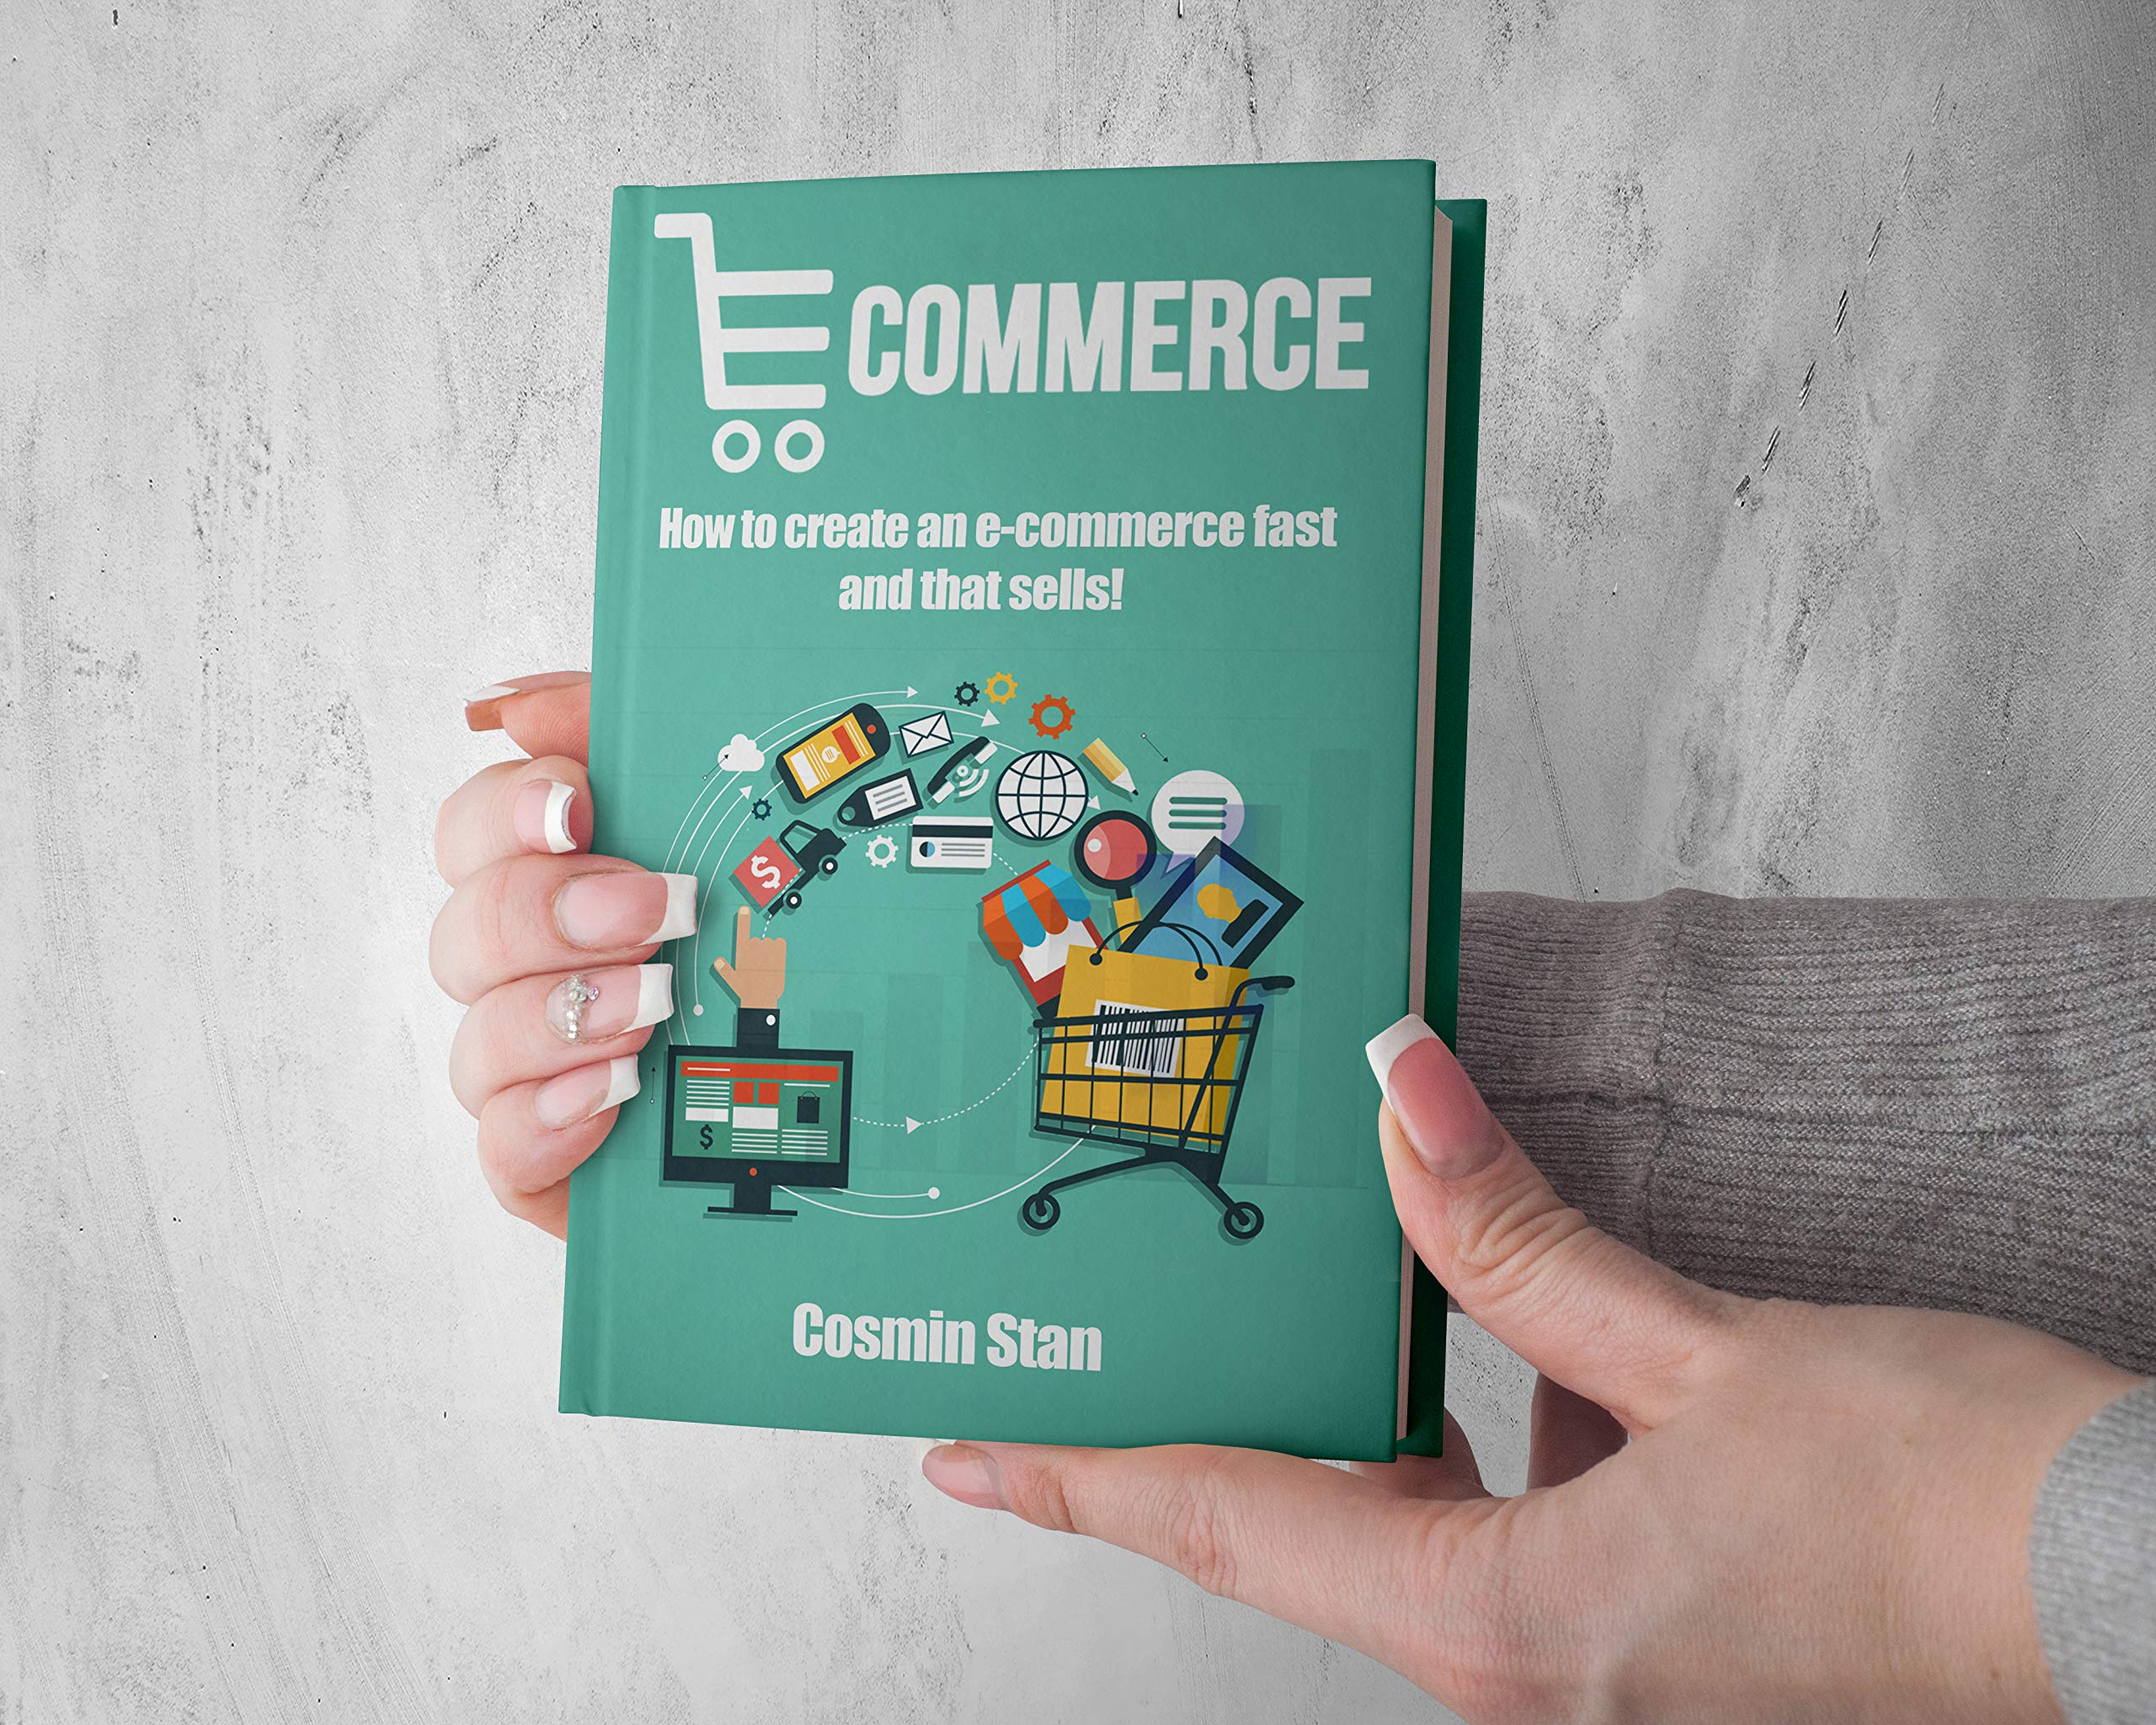 eCommerce and The Secret Of Dropshipping by Cosmin Stan: Looking for an eBook that explains eCommerce and Dropshipping in detail? This eBook by Cosmin Stan brings the best of knowledge, experience.